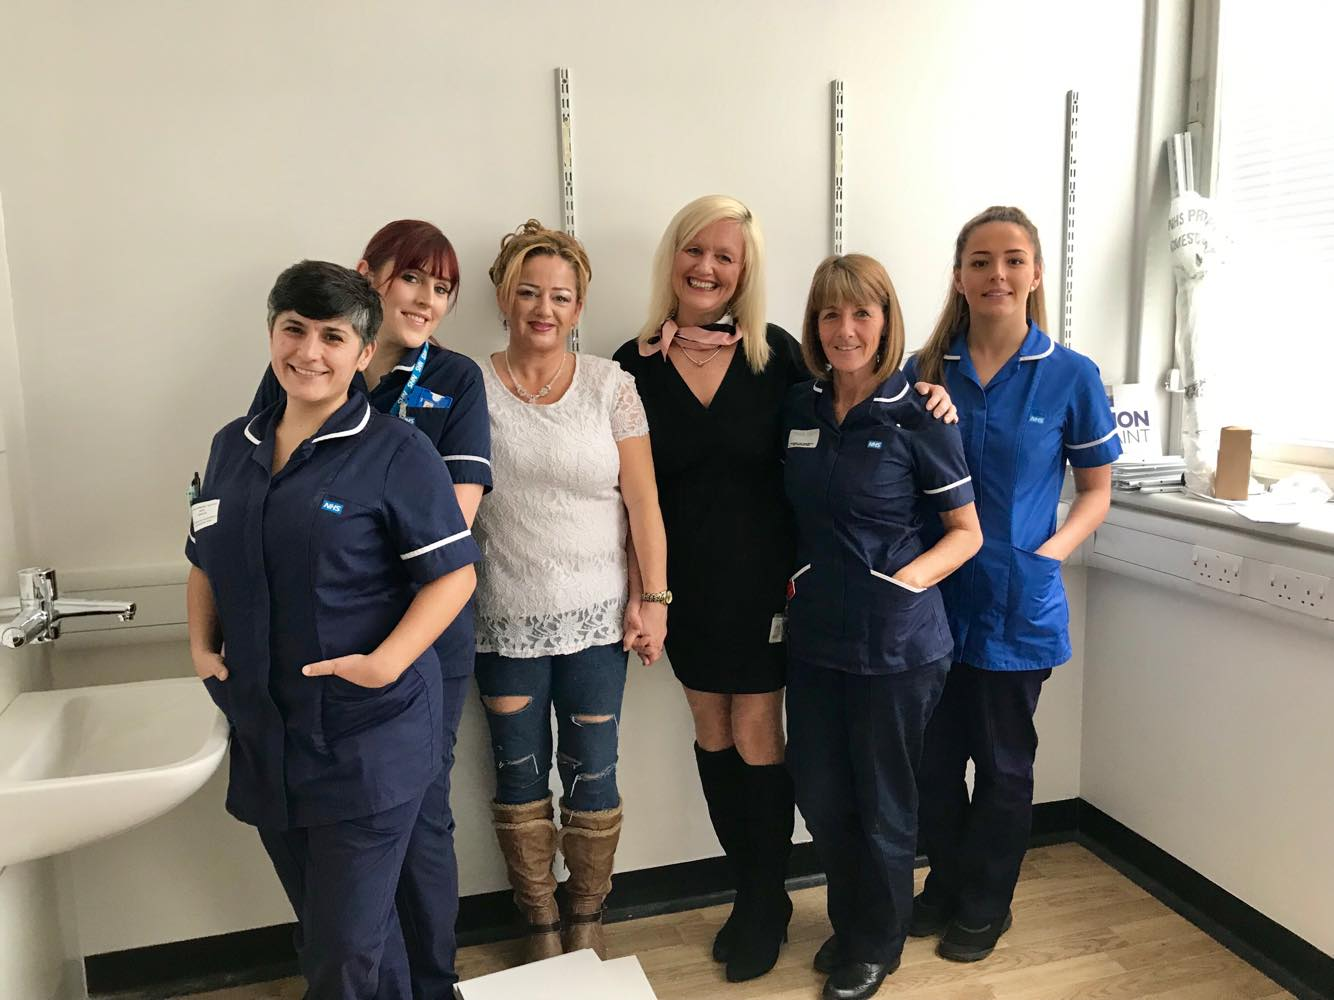 Huddersfield Royal Infirmary Ward 17 staff with Fiona and Debbie from The Basement Recovery Project